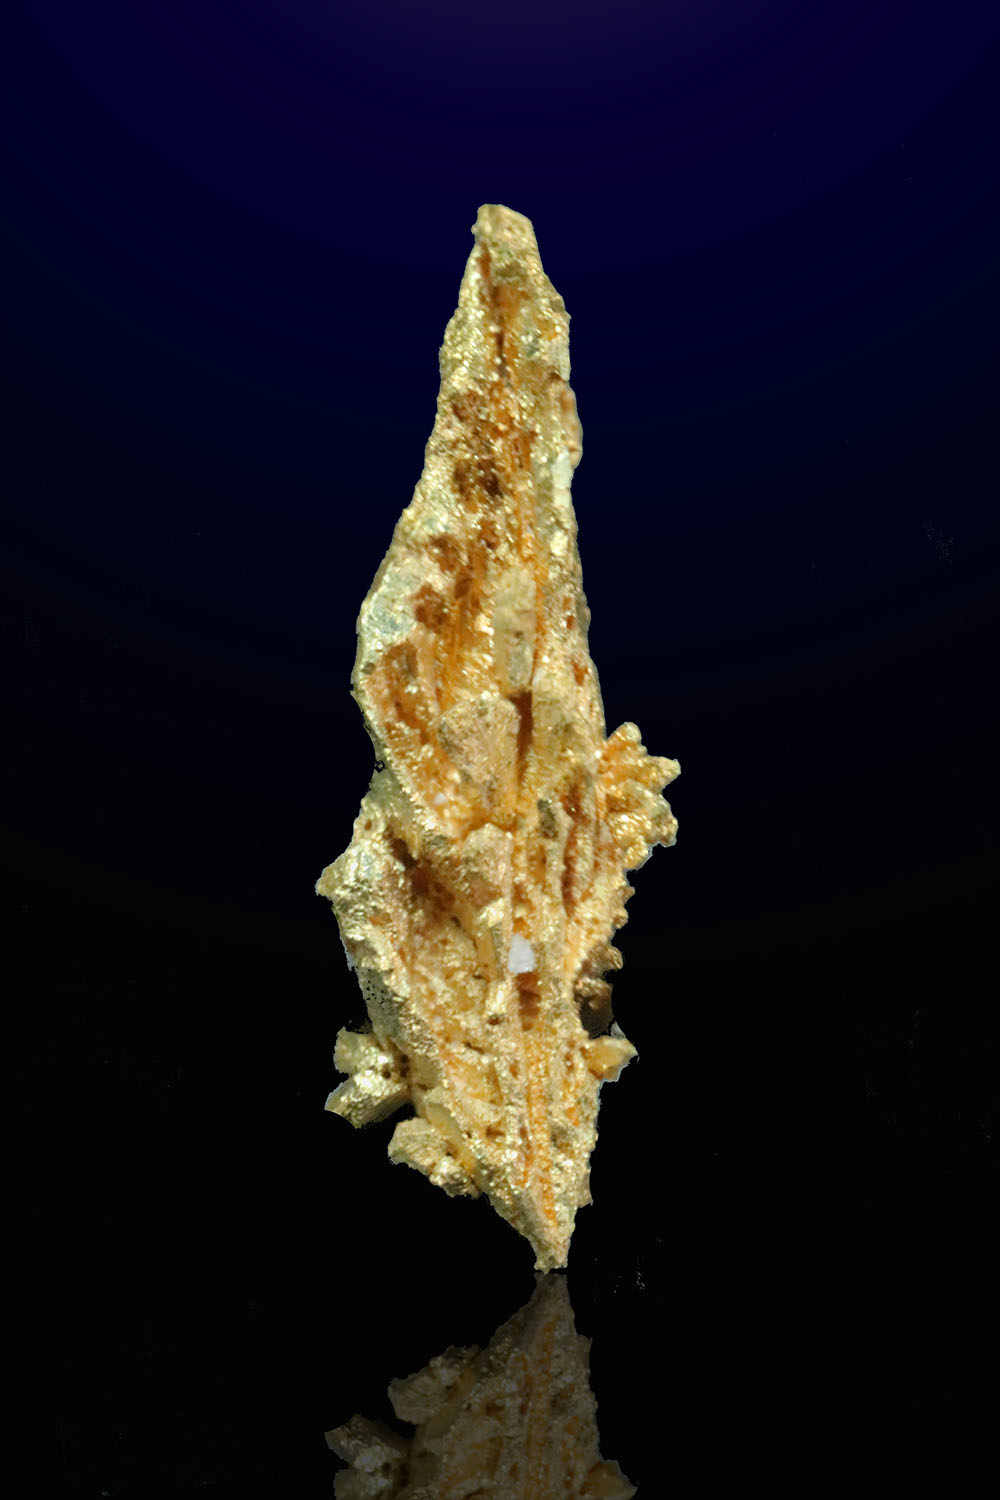 Facted Spear Gold Crystal - Round Mountain gold Mine